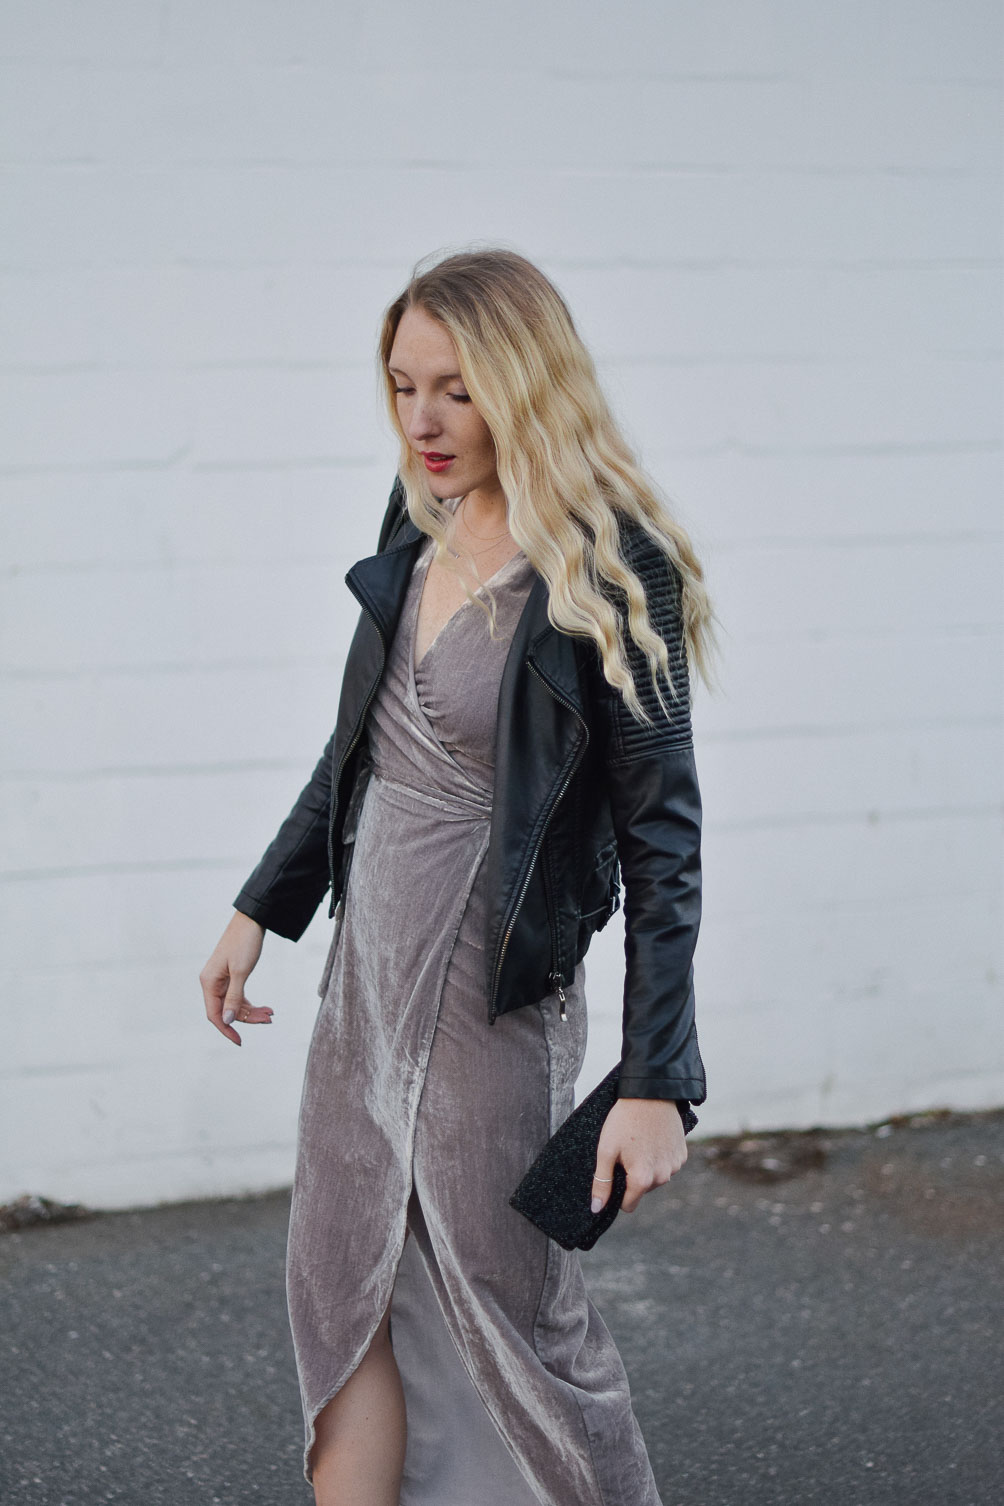 styling a metallic holiday dress party outfit with faux leather jacket and beaded clutch